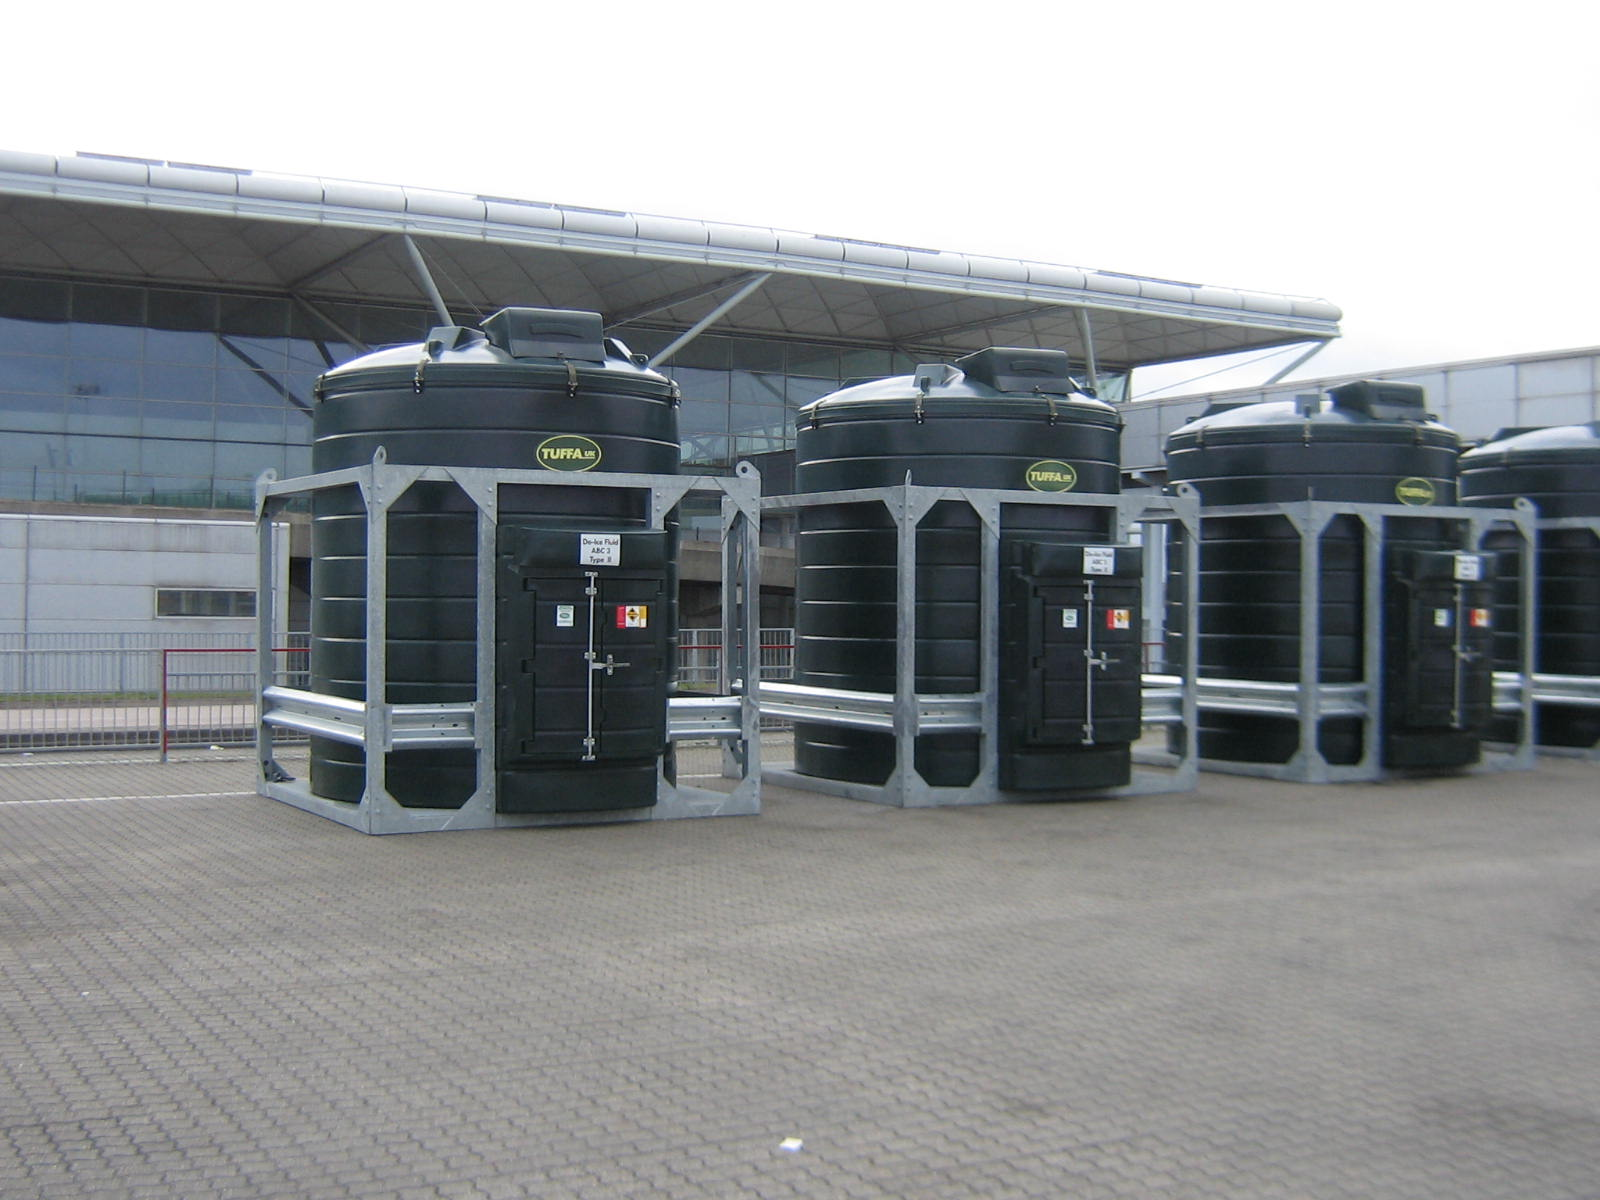 Bunded de-icer storage tanks at airport